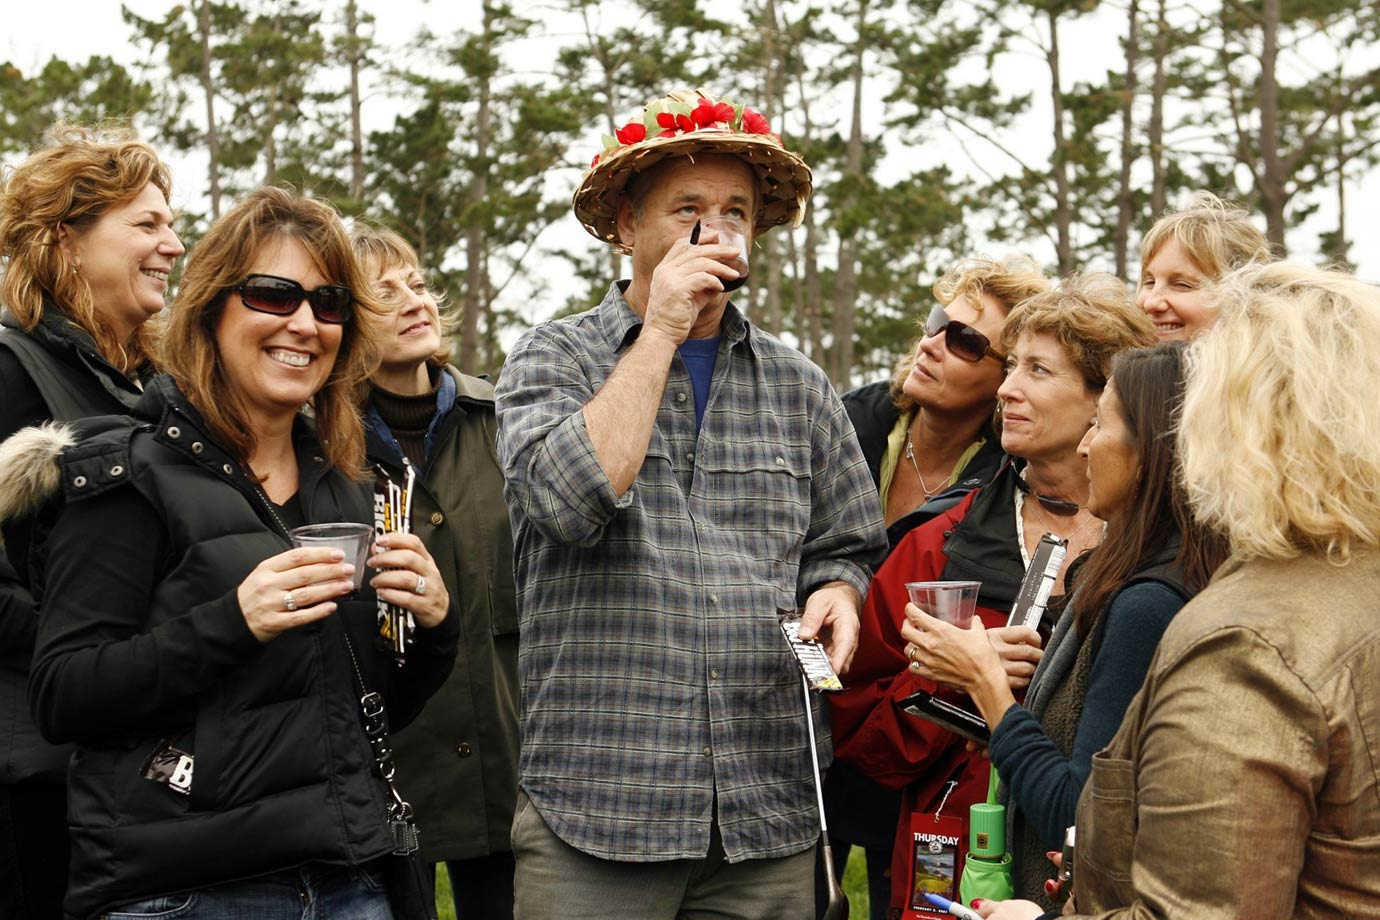 Bill Murray drinks wine with fans during the AT&T Pebble Beach National Pro-Am golf tournament on Feb. 8, 2007 in Pebble Beach, Calif.